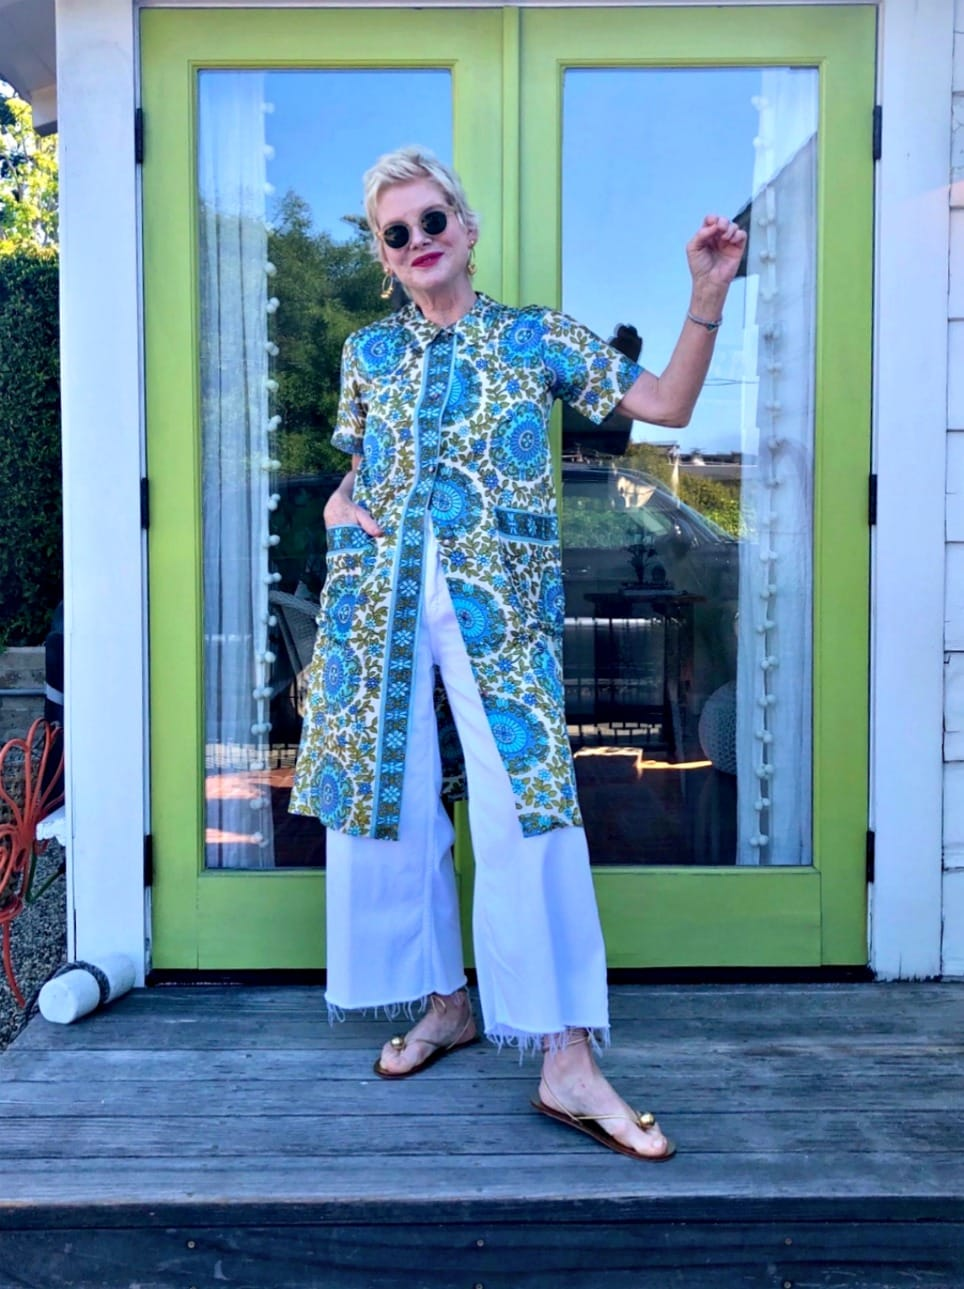 donna the cancer fashionista with a well styled life